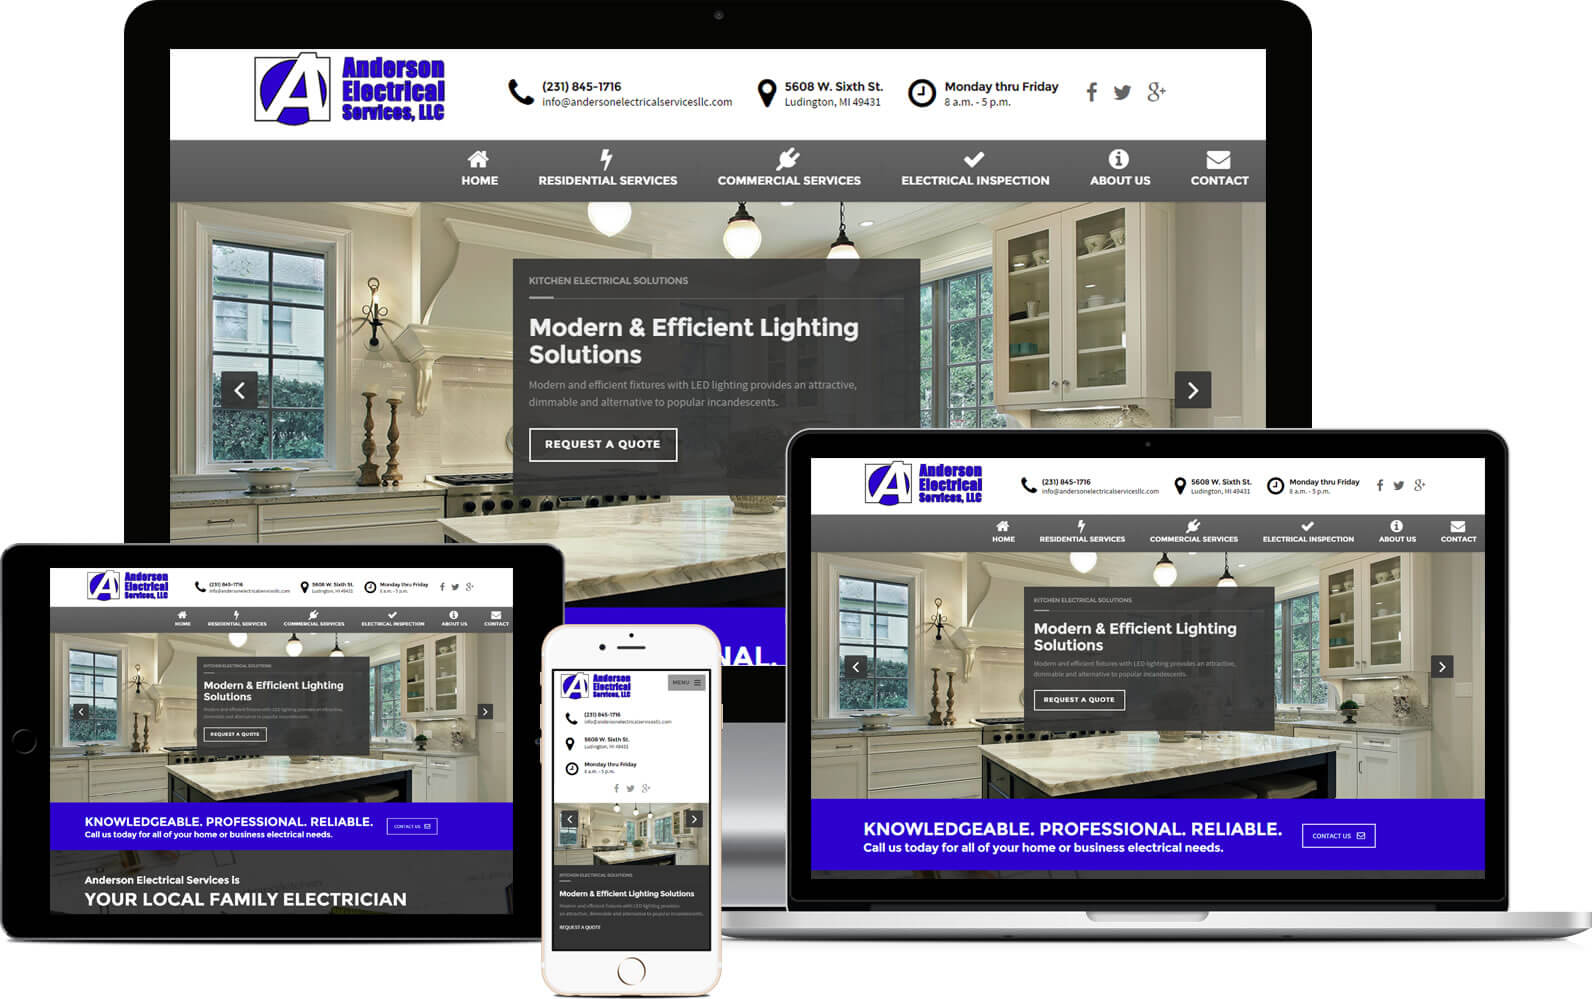 Responsive Web Design for Anderson Electrical Services in Ludington, MI